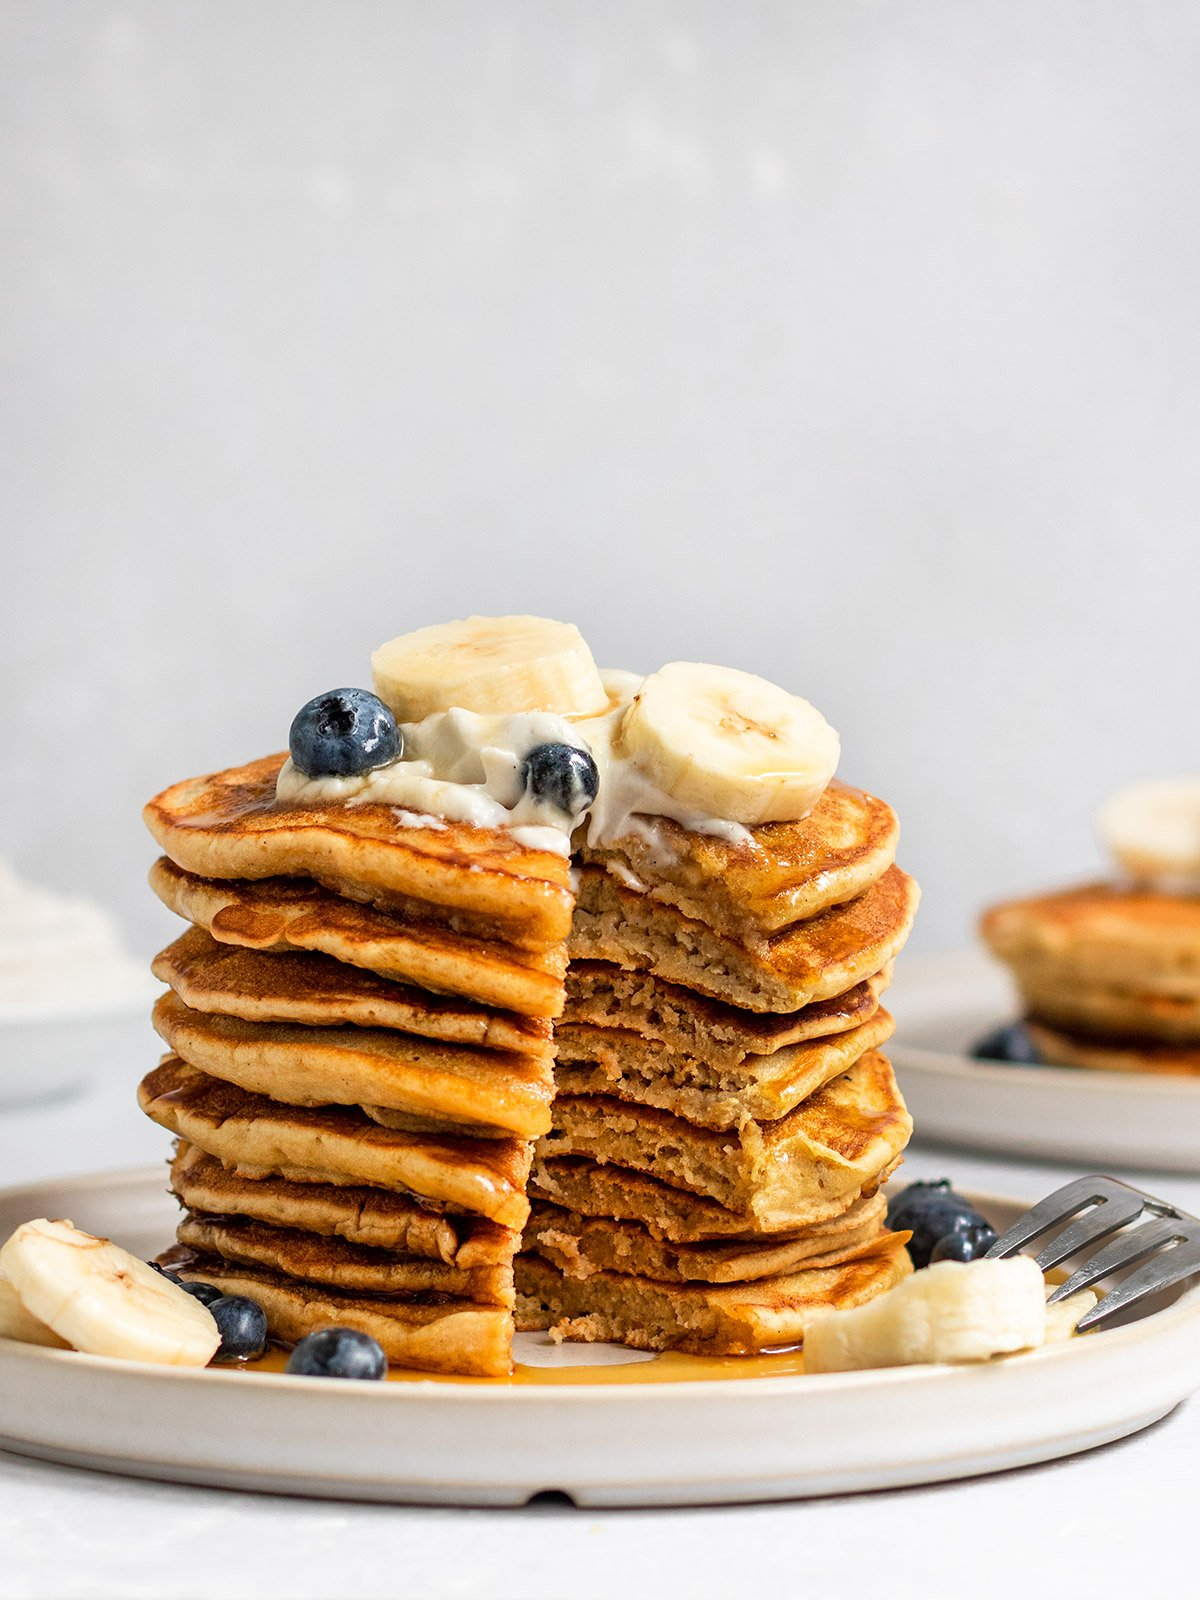 stack of banana pancakes with a slice taken out to show fluffy inside texture